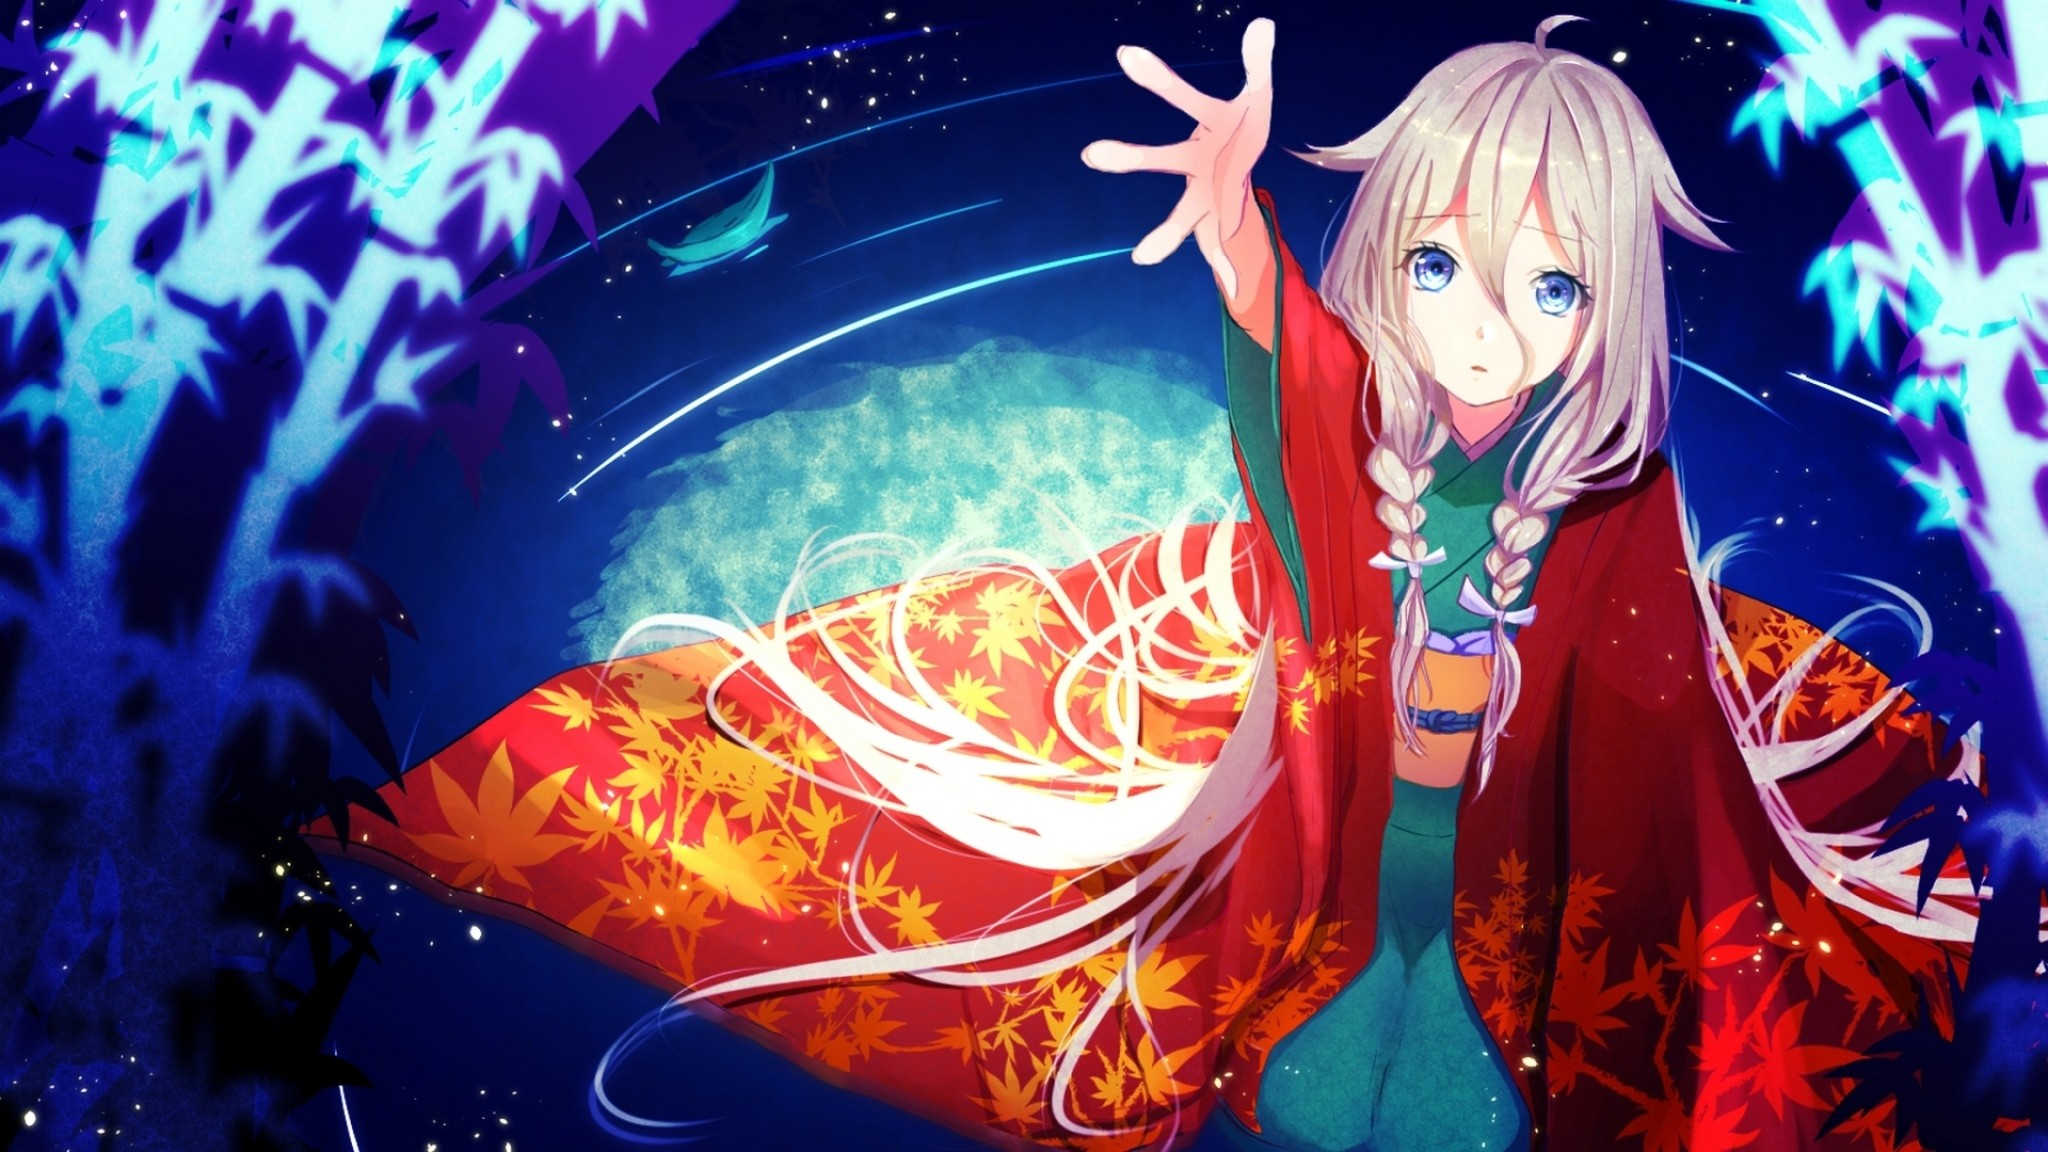 Youtube wallpaper 2048x1152 89 images - Anime background for youtube ...